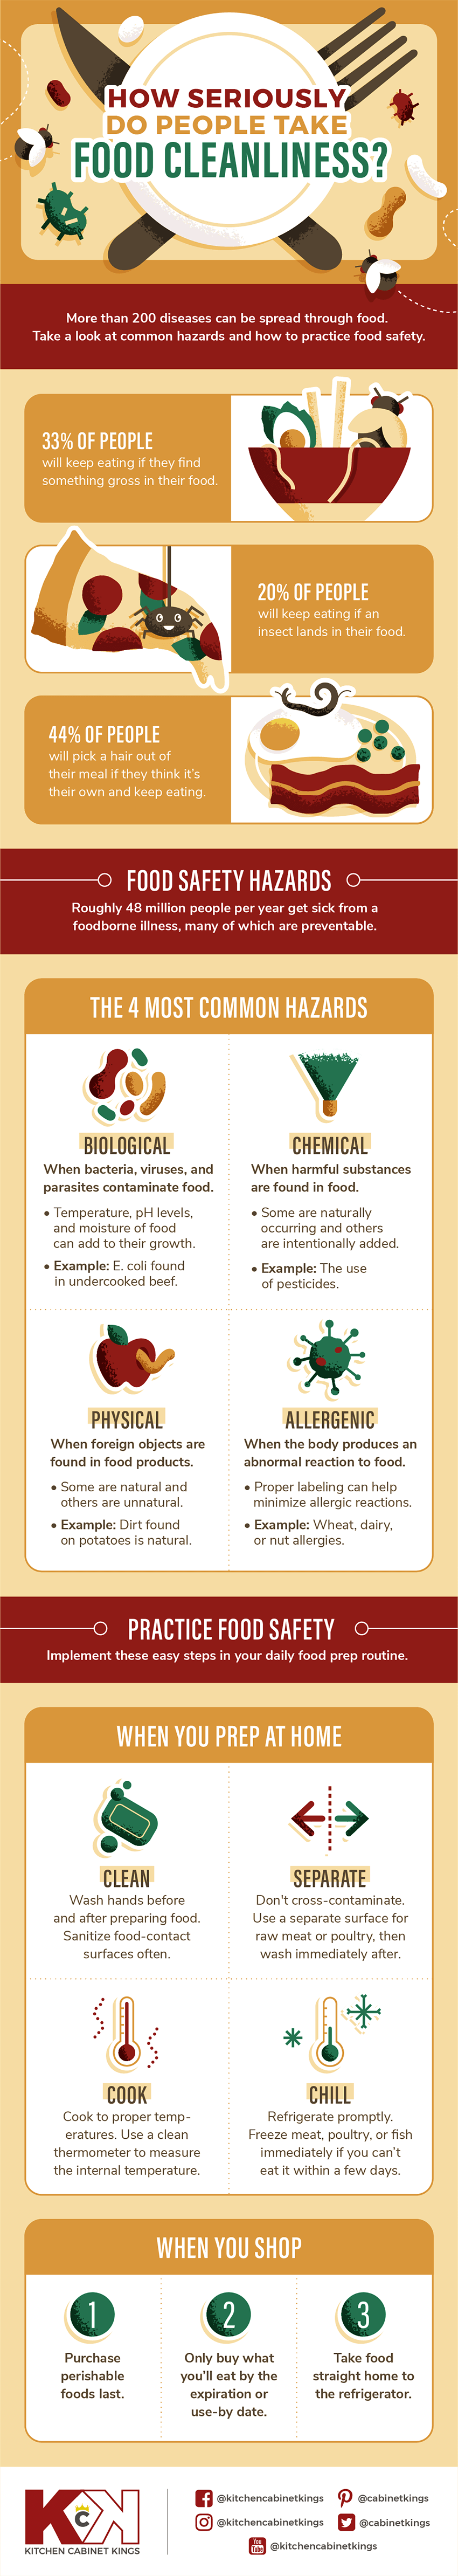 food-cleanliness-infographic